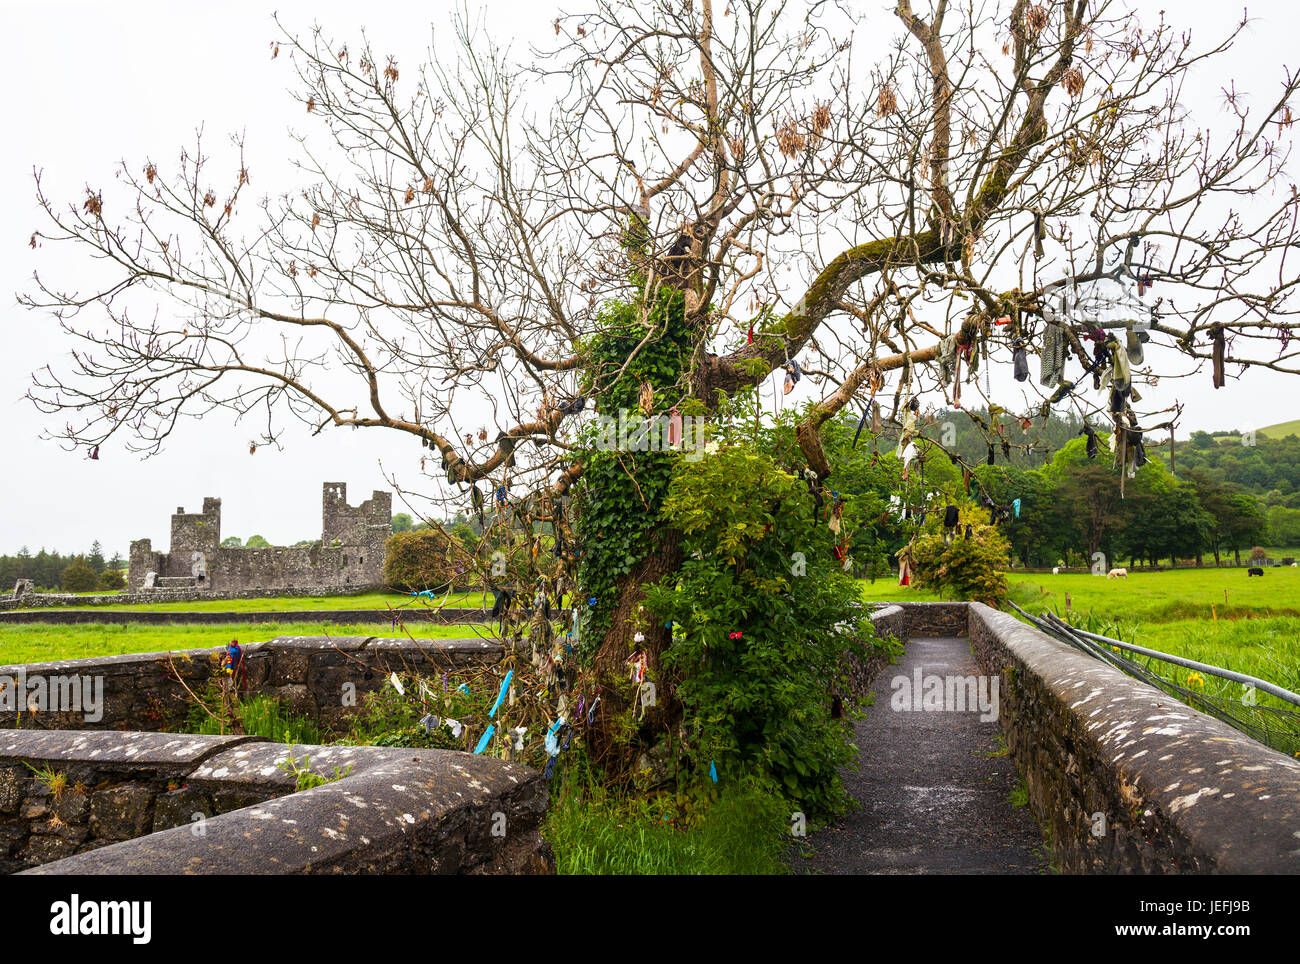 Tree with various faith offerings at 15th century Benedictine Fore Abbey ruin, situated to the north of Lough Lene - Stock Image